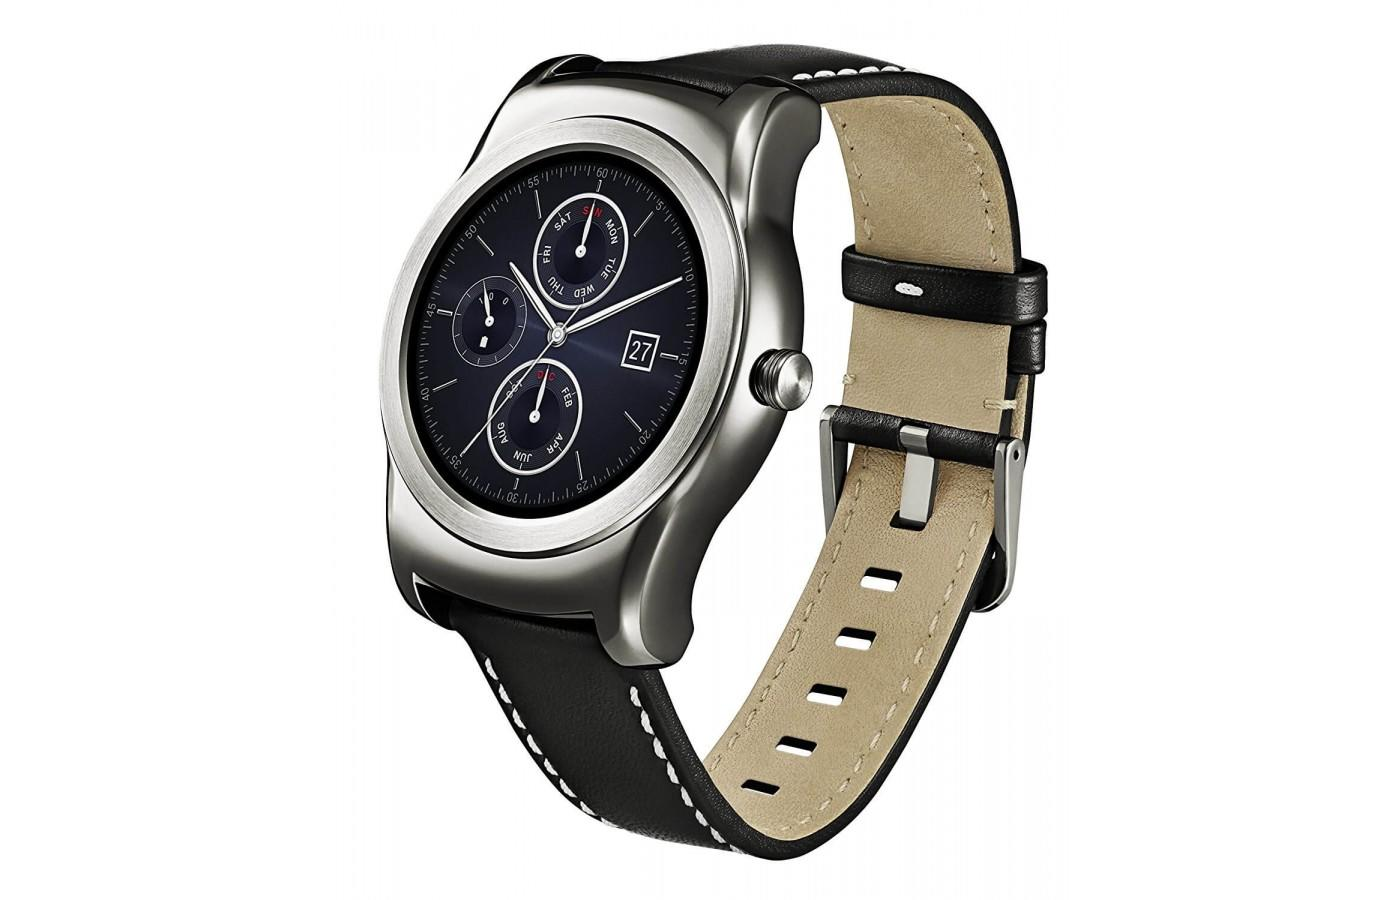 LG Watch Urbane P-OLED Display